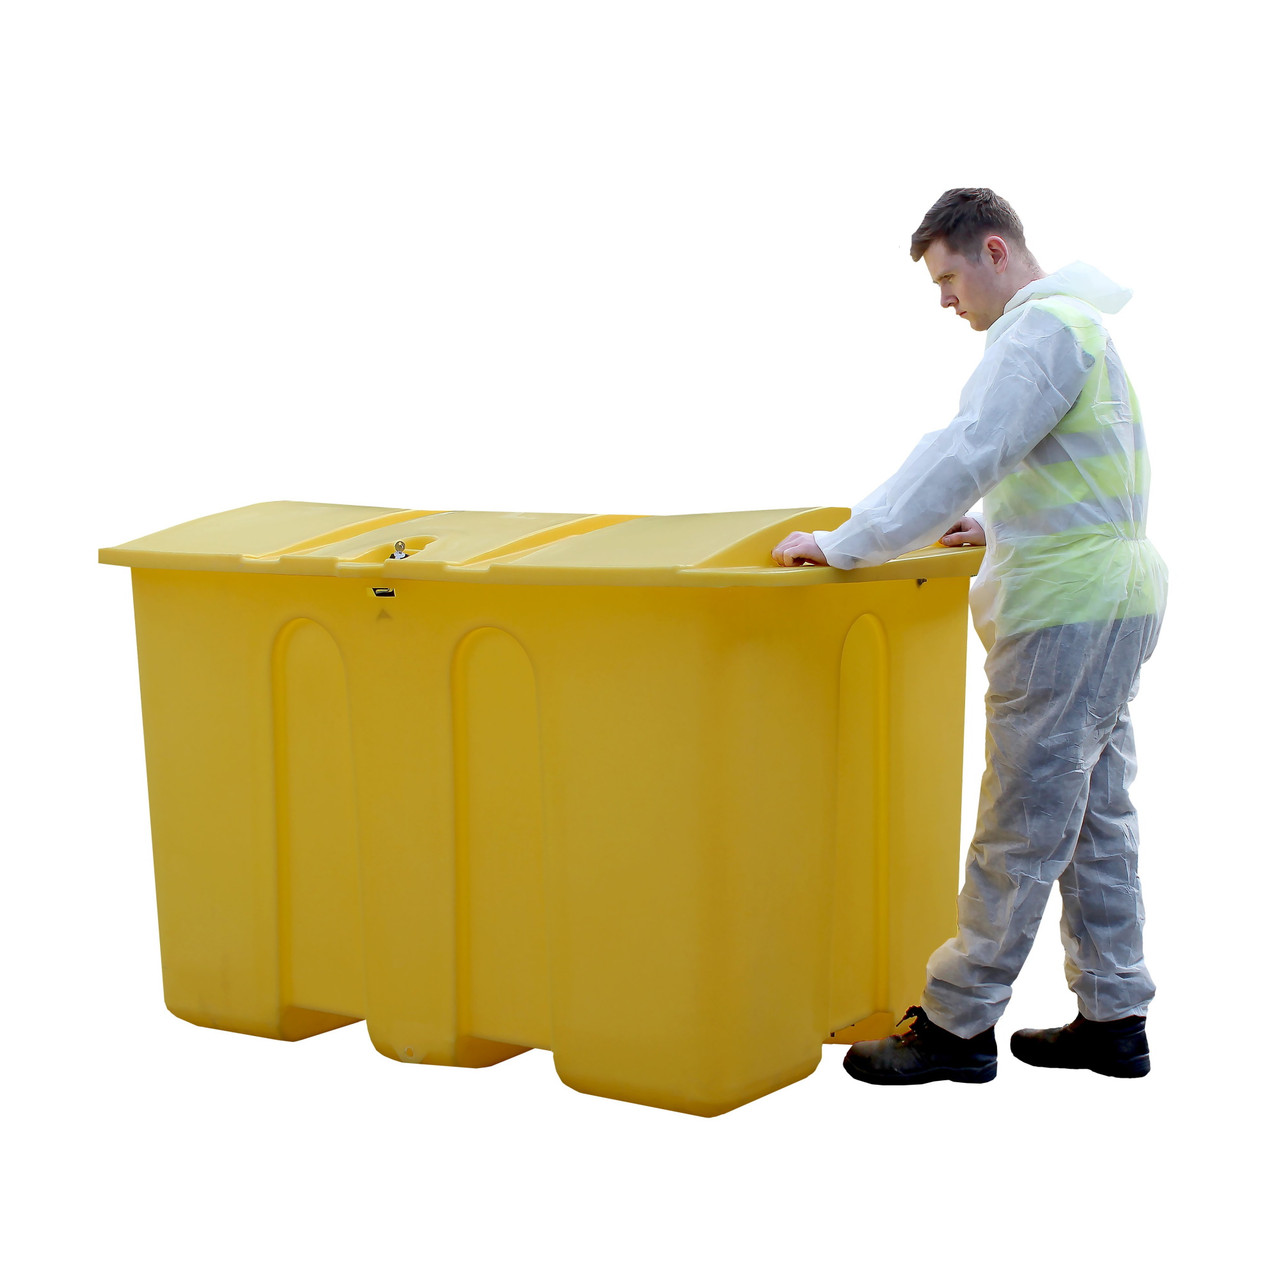 PSB3 1400ltr General Storage Container Bin